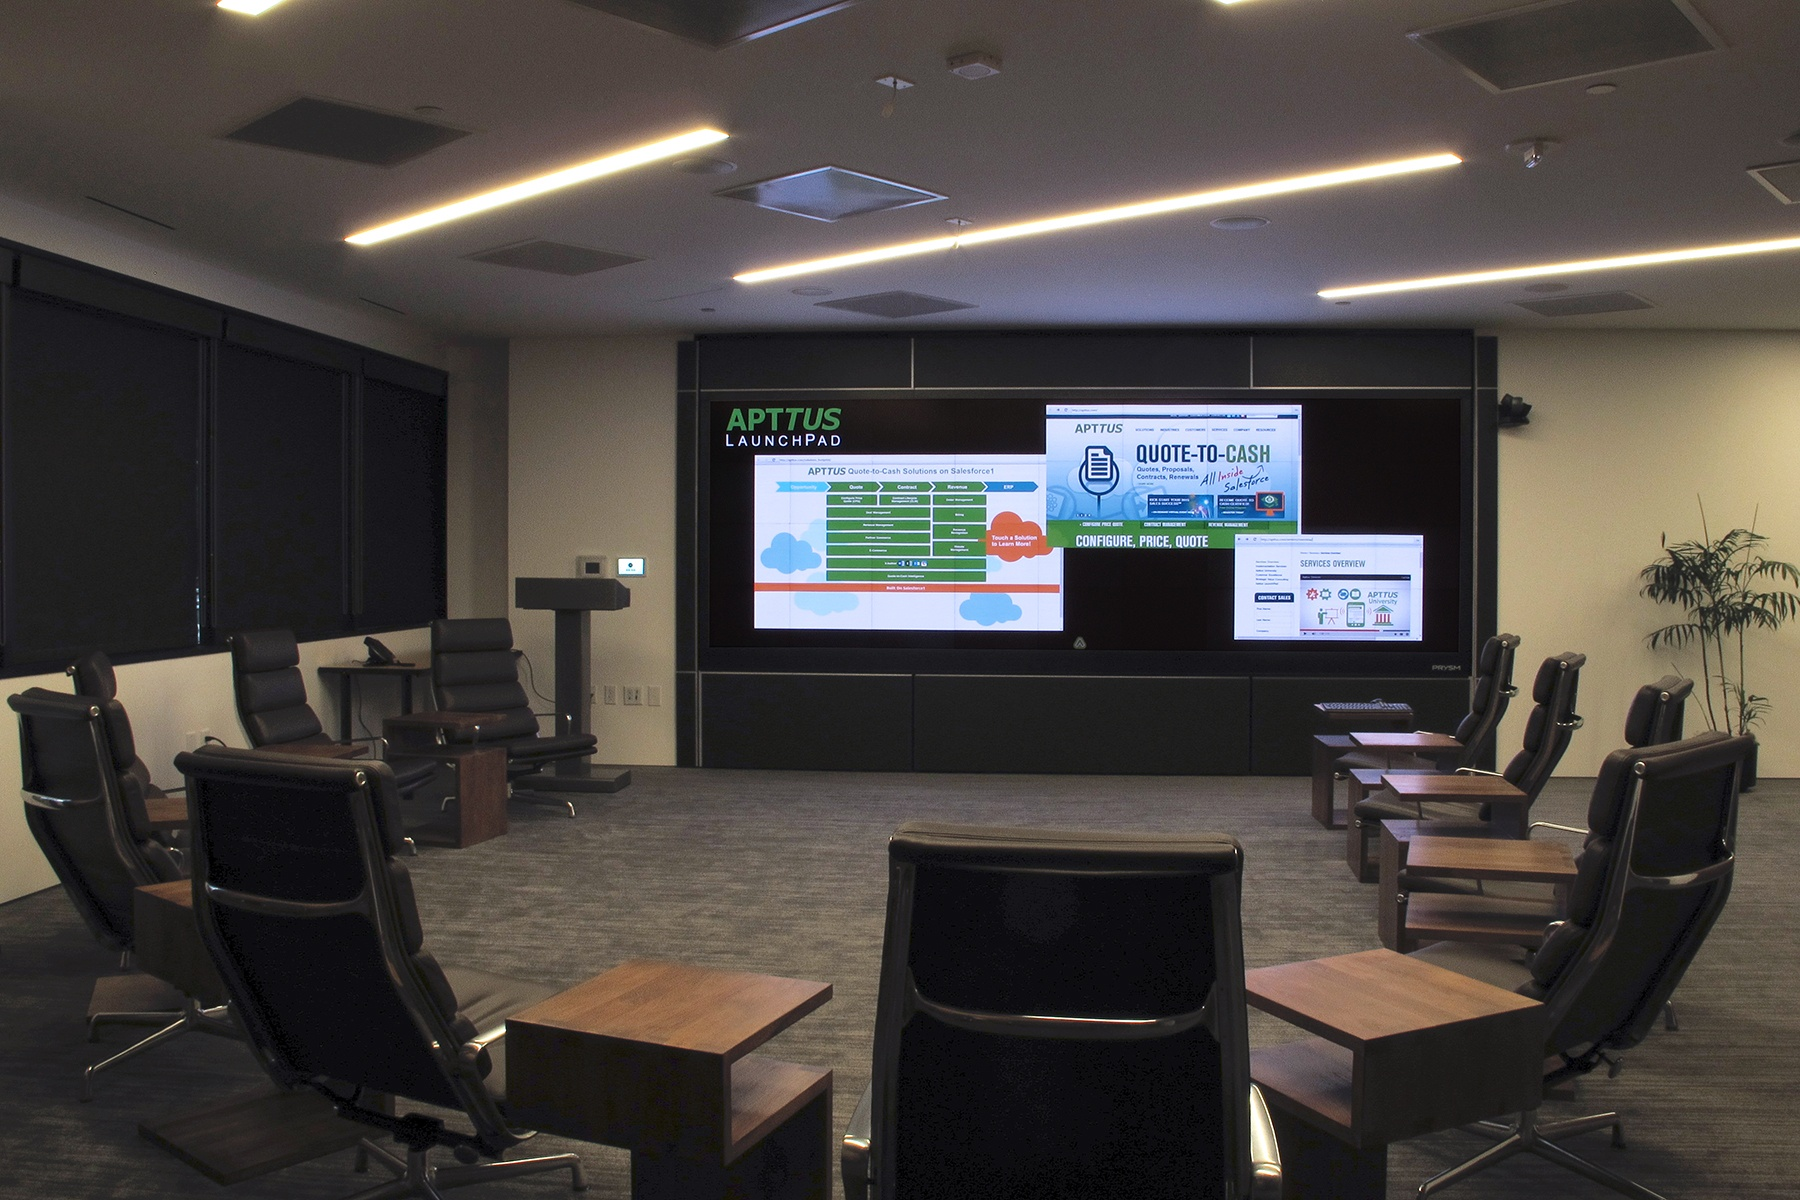 Apttus Delivers Impact with Cascade Collaboration Video Wall from Prysm